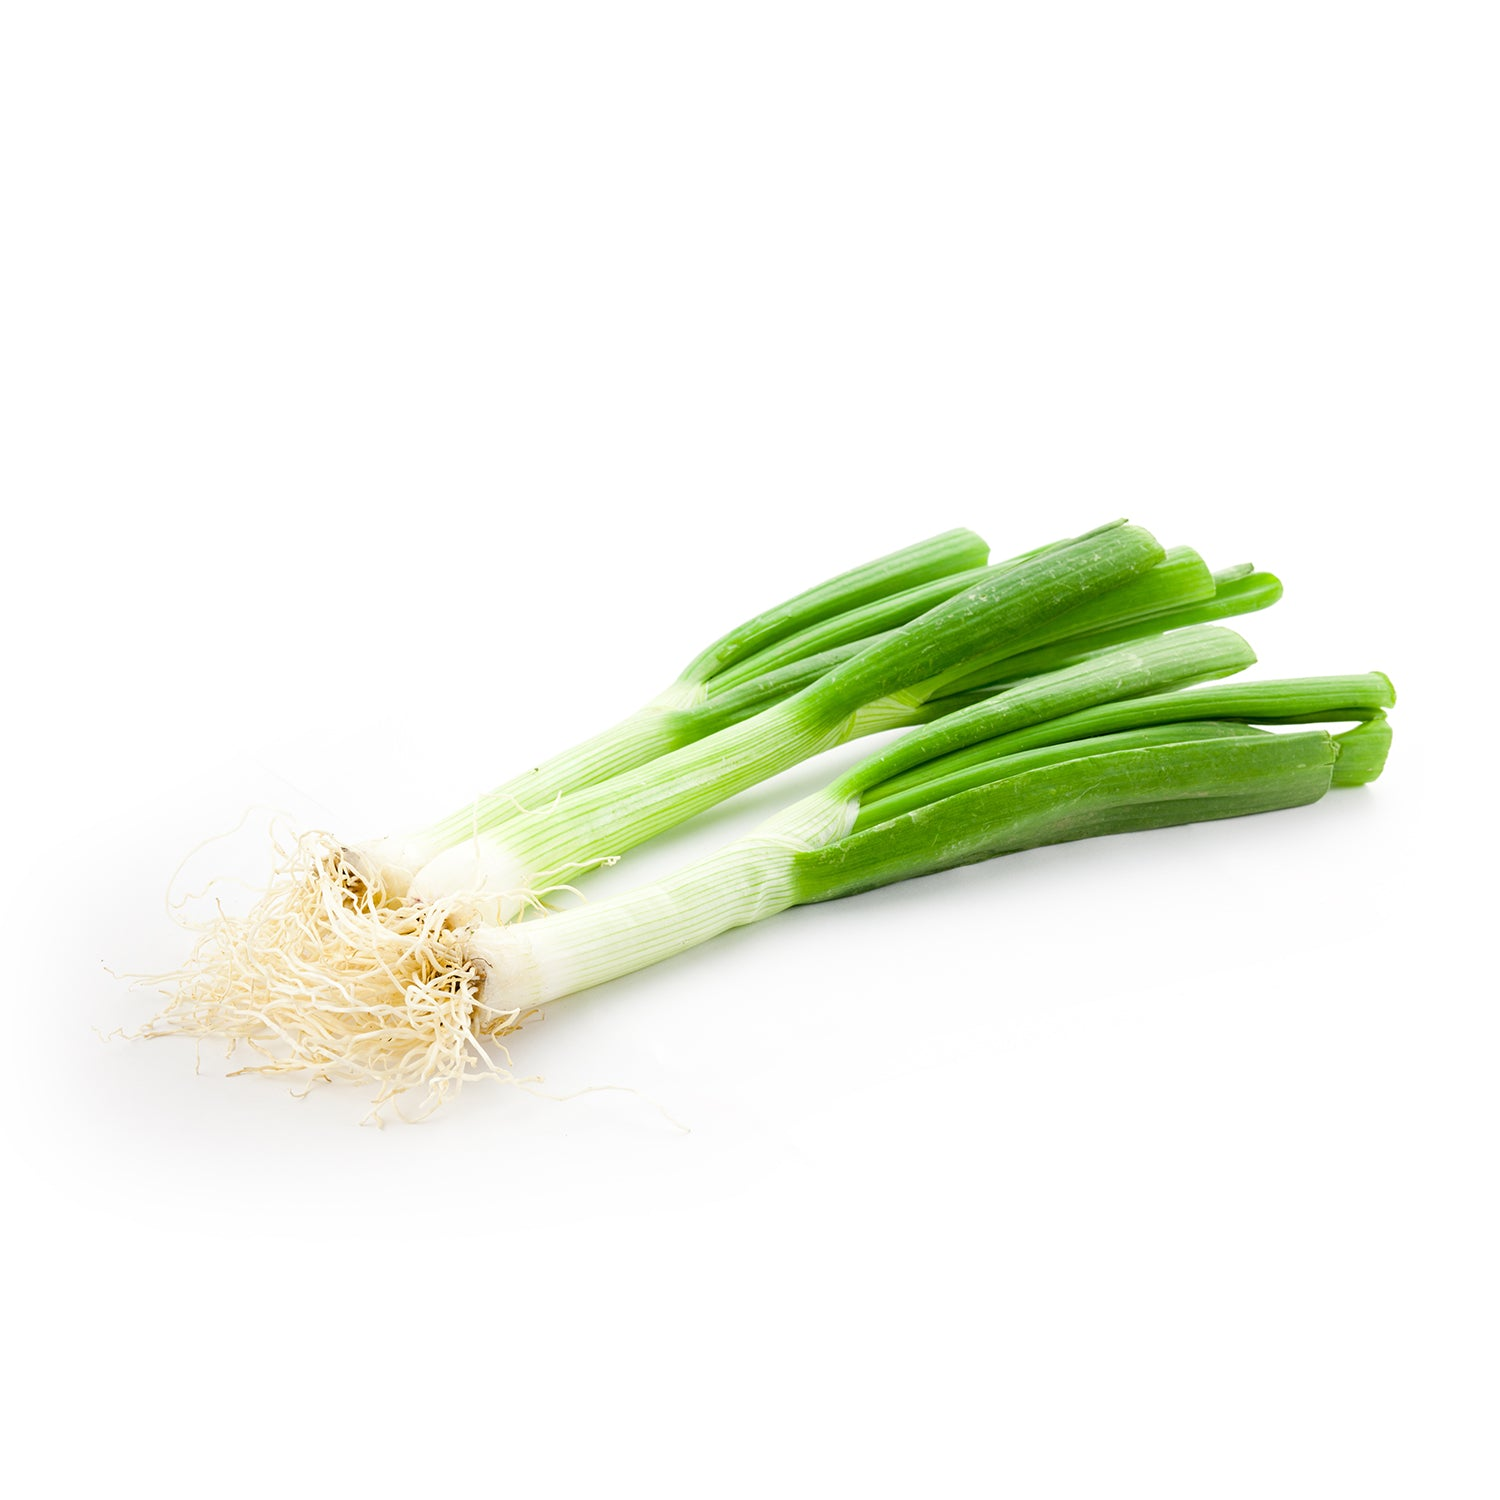 Scallions (Bunch)